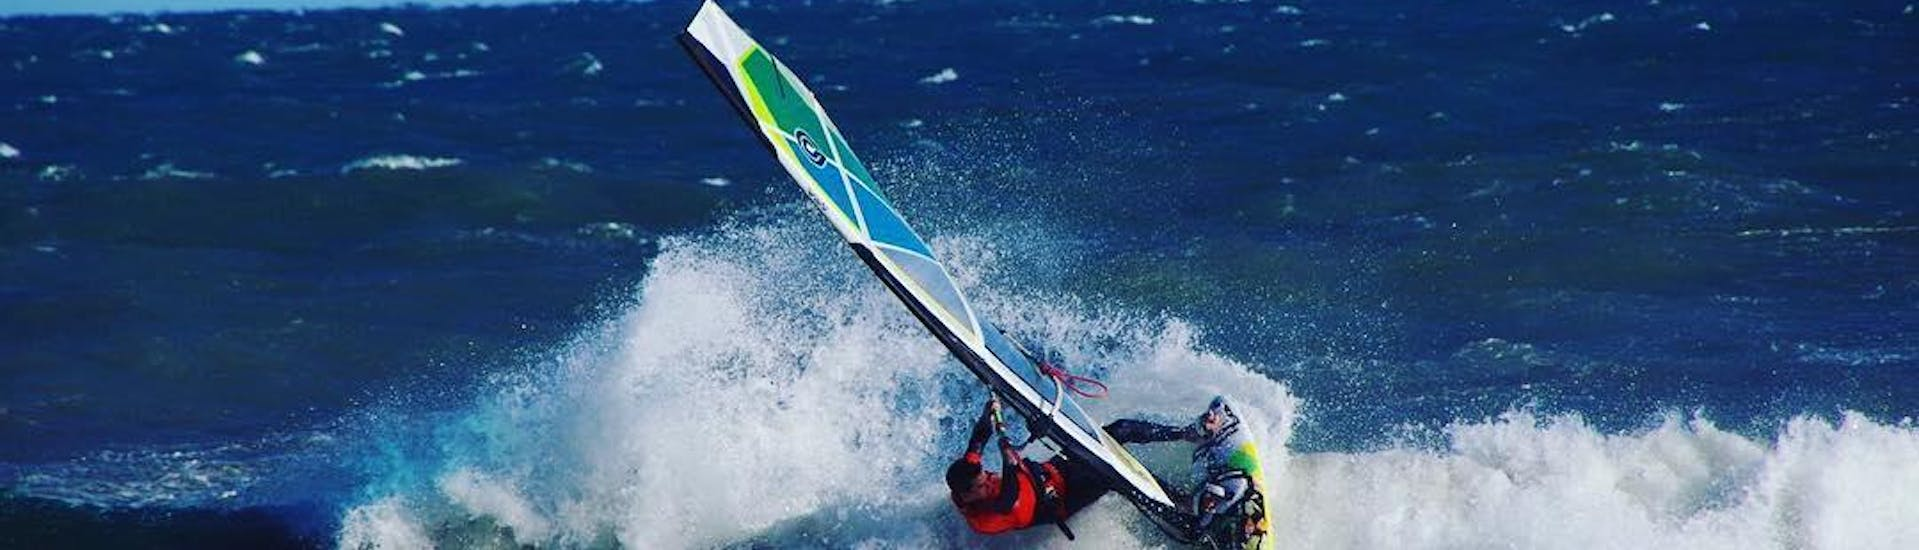 A man is practicing his first turns in the water during the windsurfing lessons in Cullera for beginners with Anywhere Watersports.